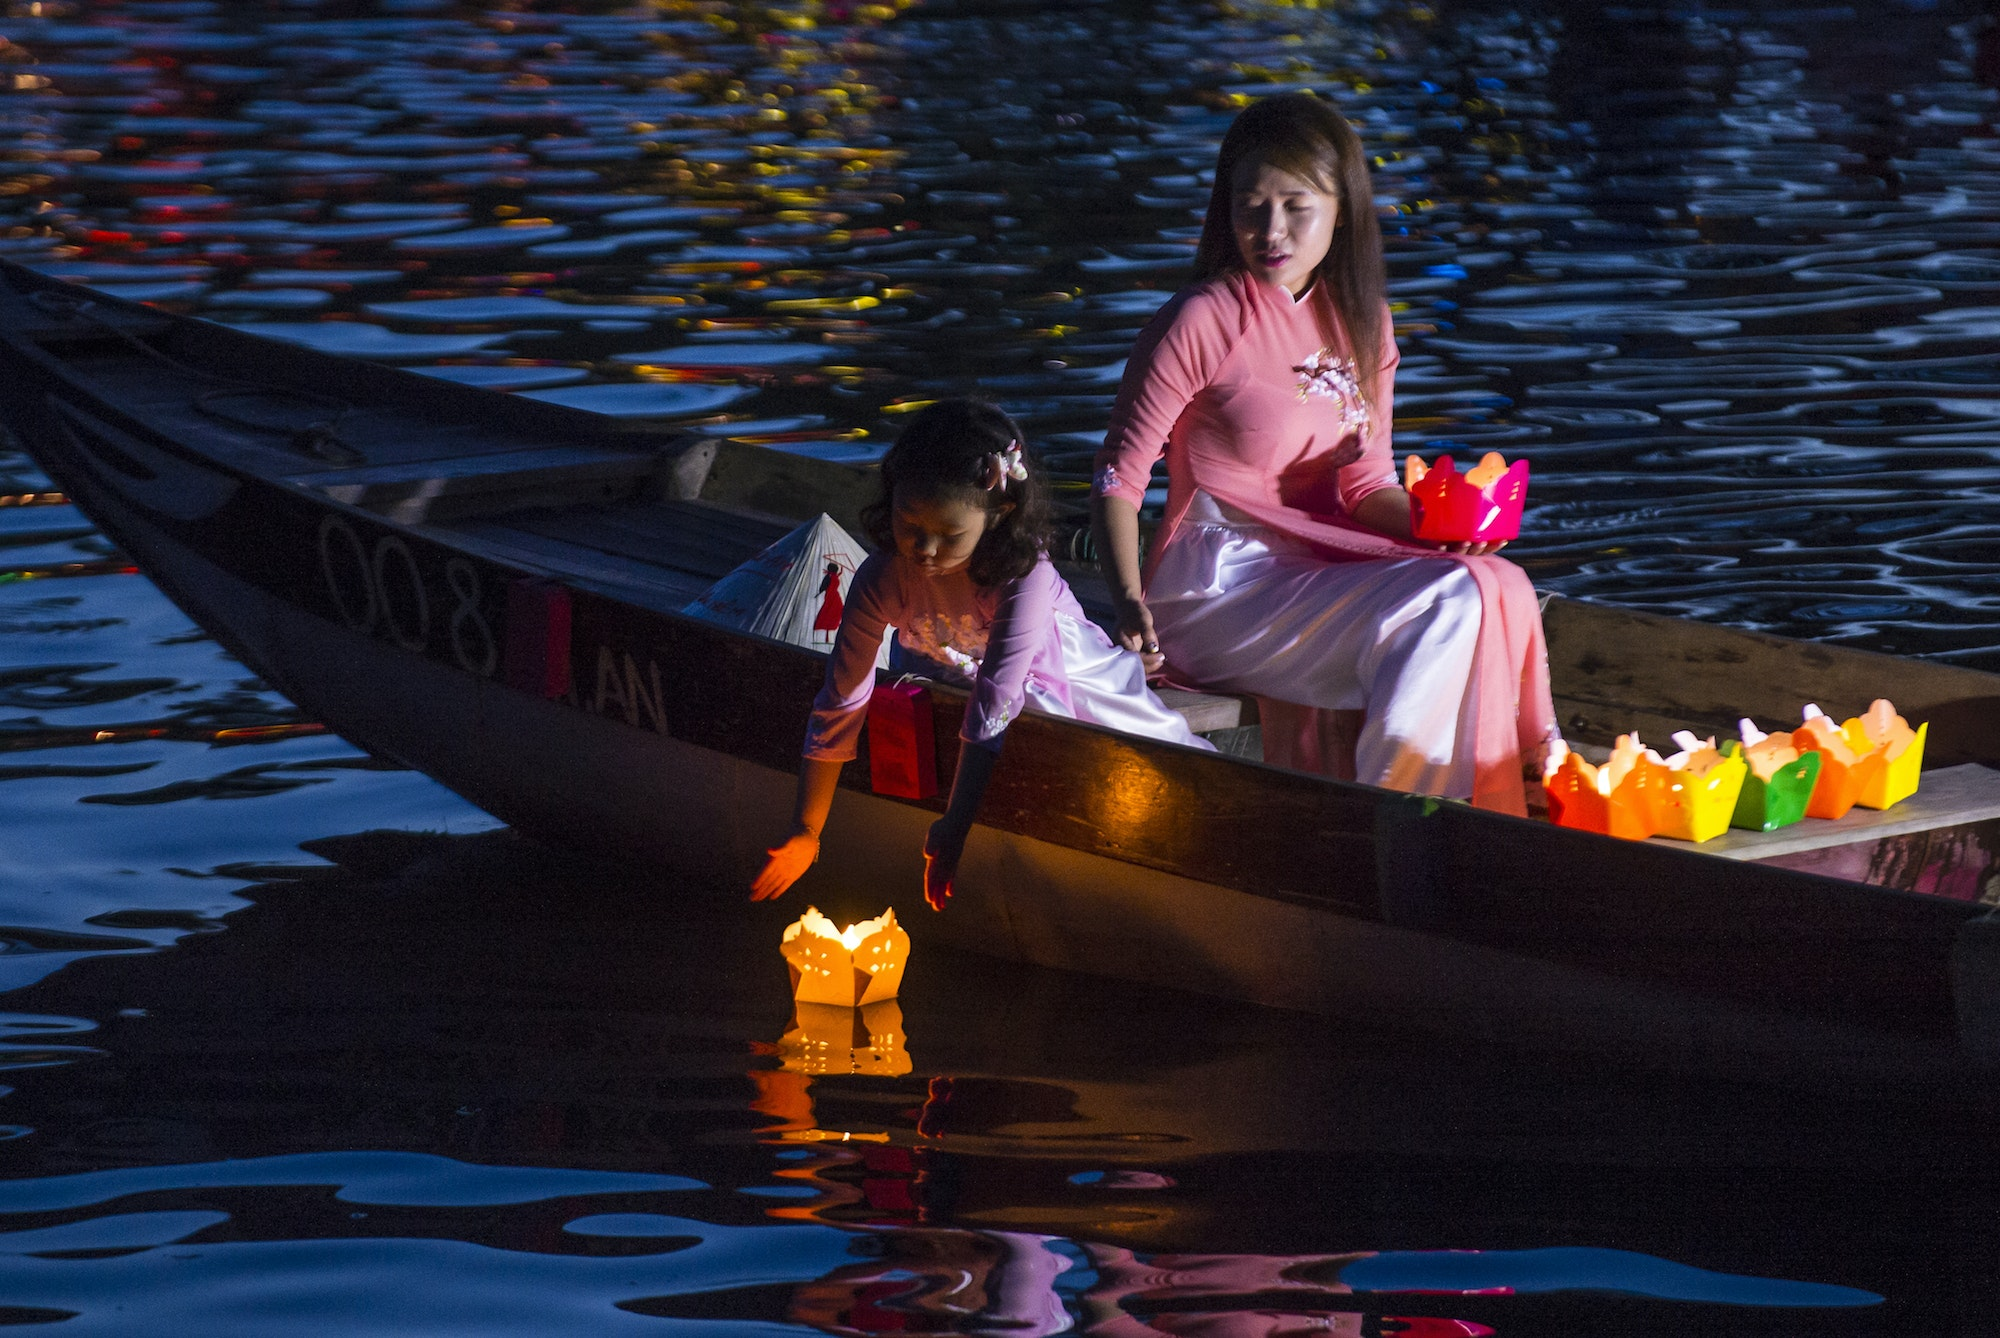 In Hoi An, the Full Moon Lantern Festival is celebrated on the 14th day of each lunar month when the moon is at its fullest and brightest.